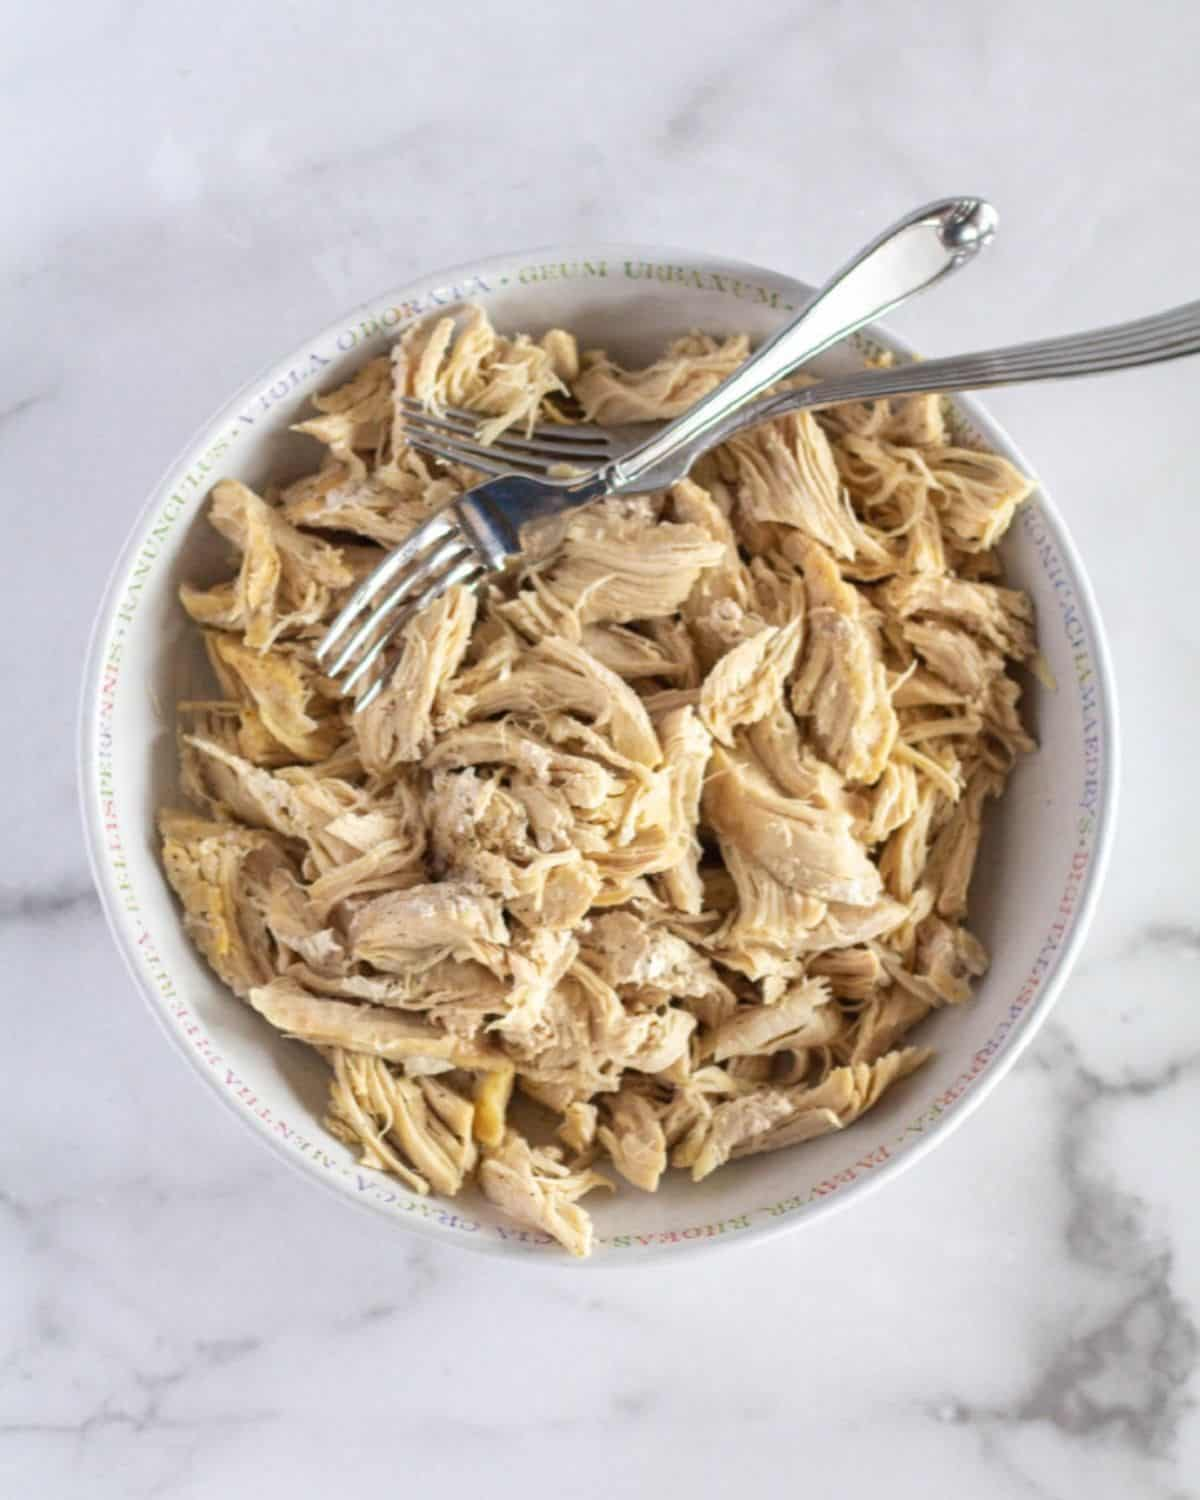 shredded chicken in bowl with 2 forks